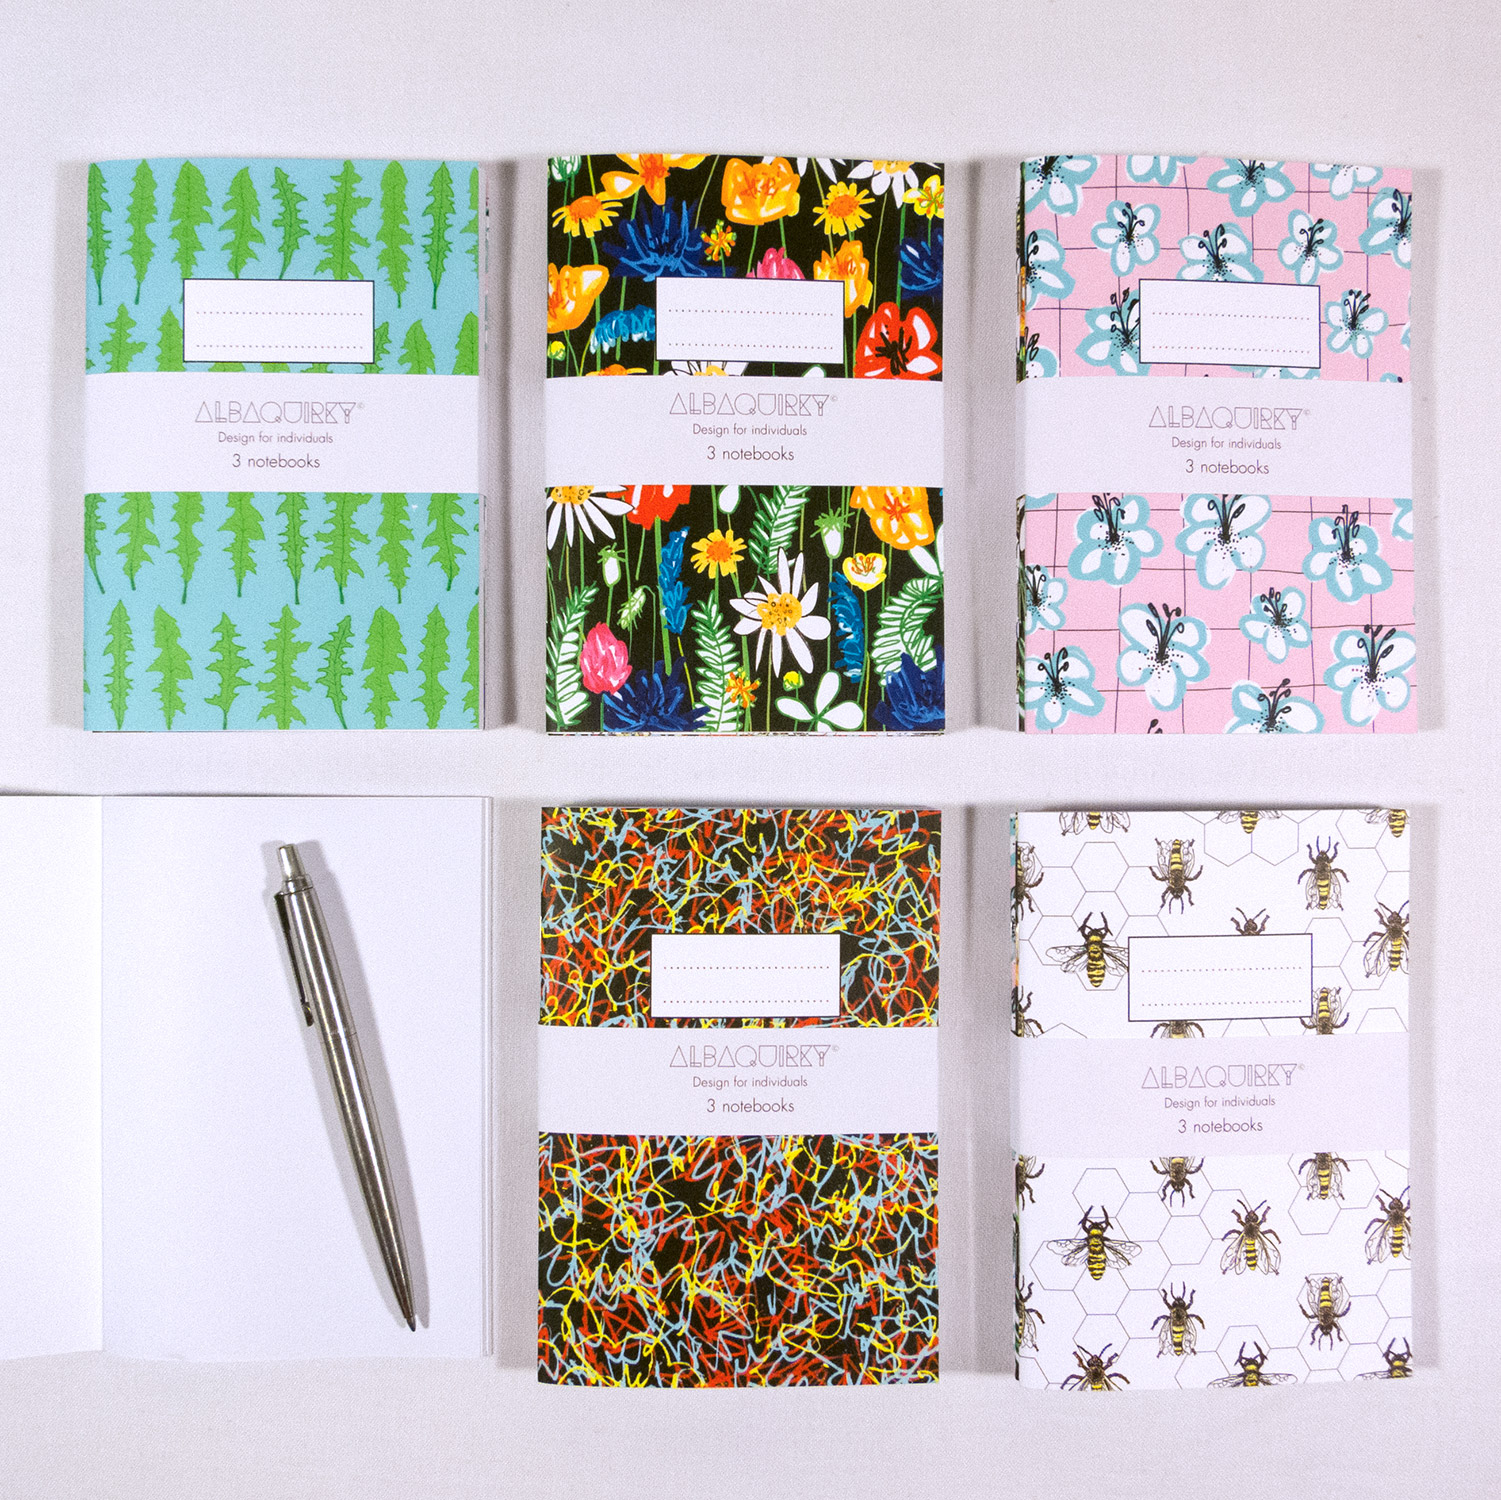 Stationery - Notebooks and greetings cards